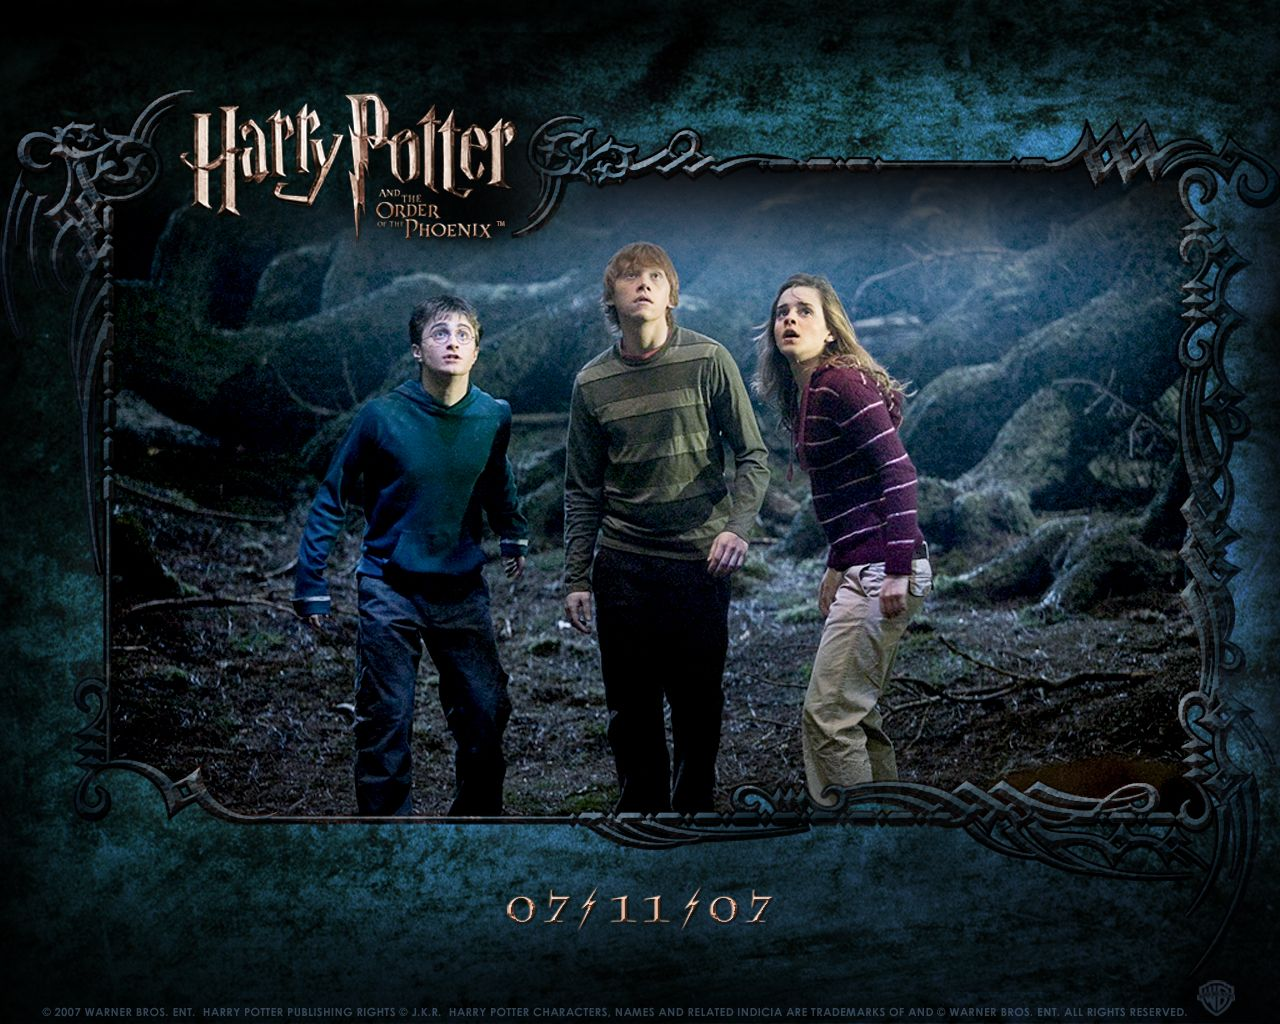 Watch Streaming Hd Harry Potter And The Order Of The Phoenix Starring Daniel Radcliffe Emma Watson Ruper Harry Potter Movies Harry James Potter Harry Potter